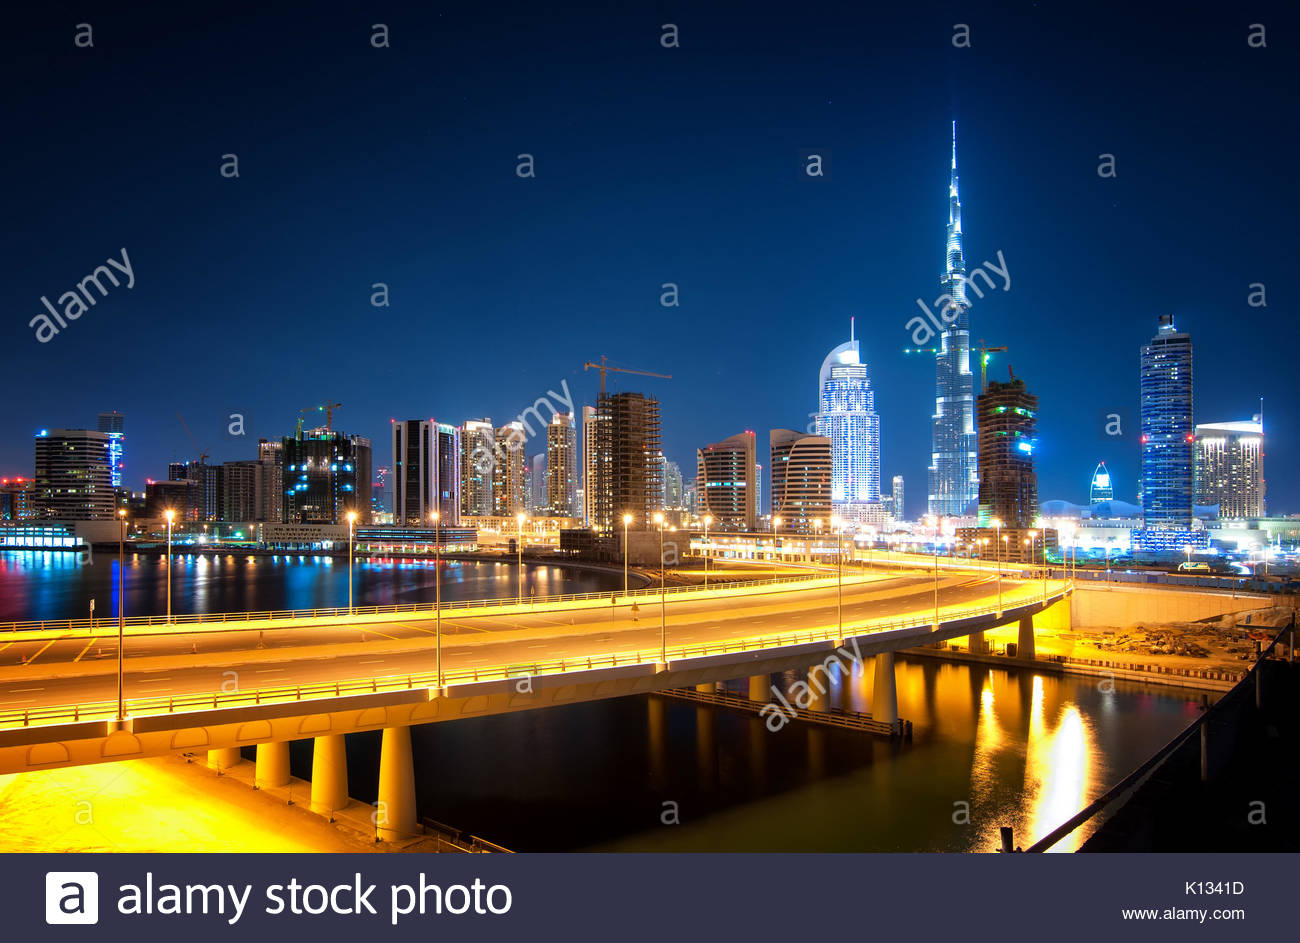 Fascinating reflection of tallest skyscrapers in Business Bay district during calm night with amazing bridge. Downtown - Stock Image